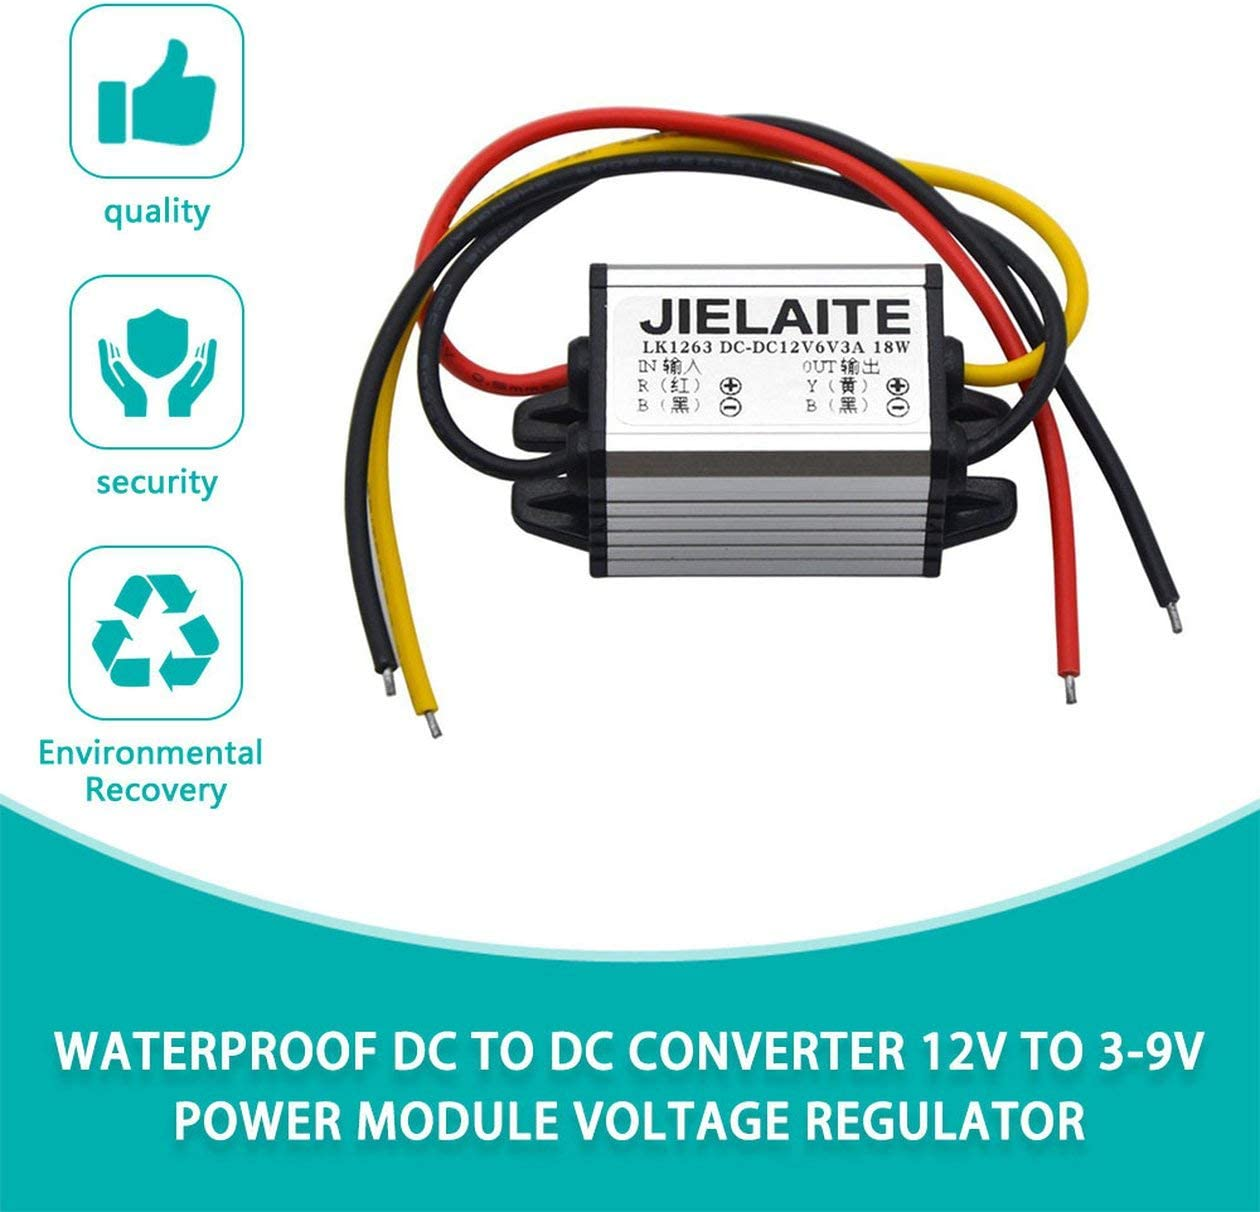 BIYI Waterproof DC to DC Converter 12V to 3-9V 2A 3A Auto Car Power Module Supply Copper Cord Step-Down Voltage Regulator silver /& black